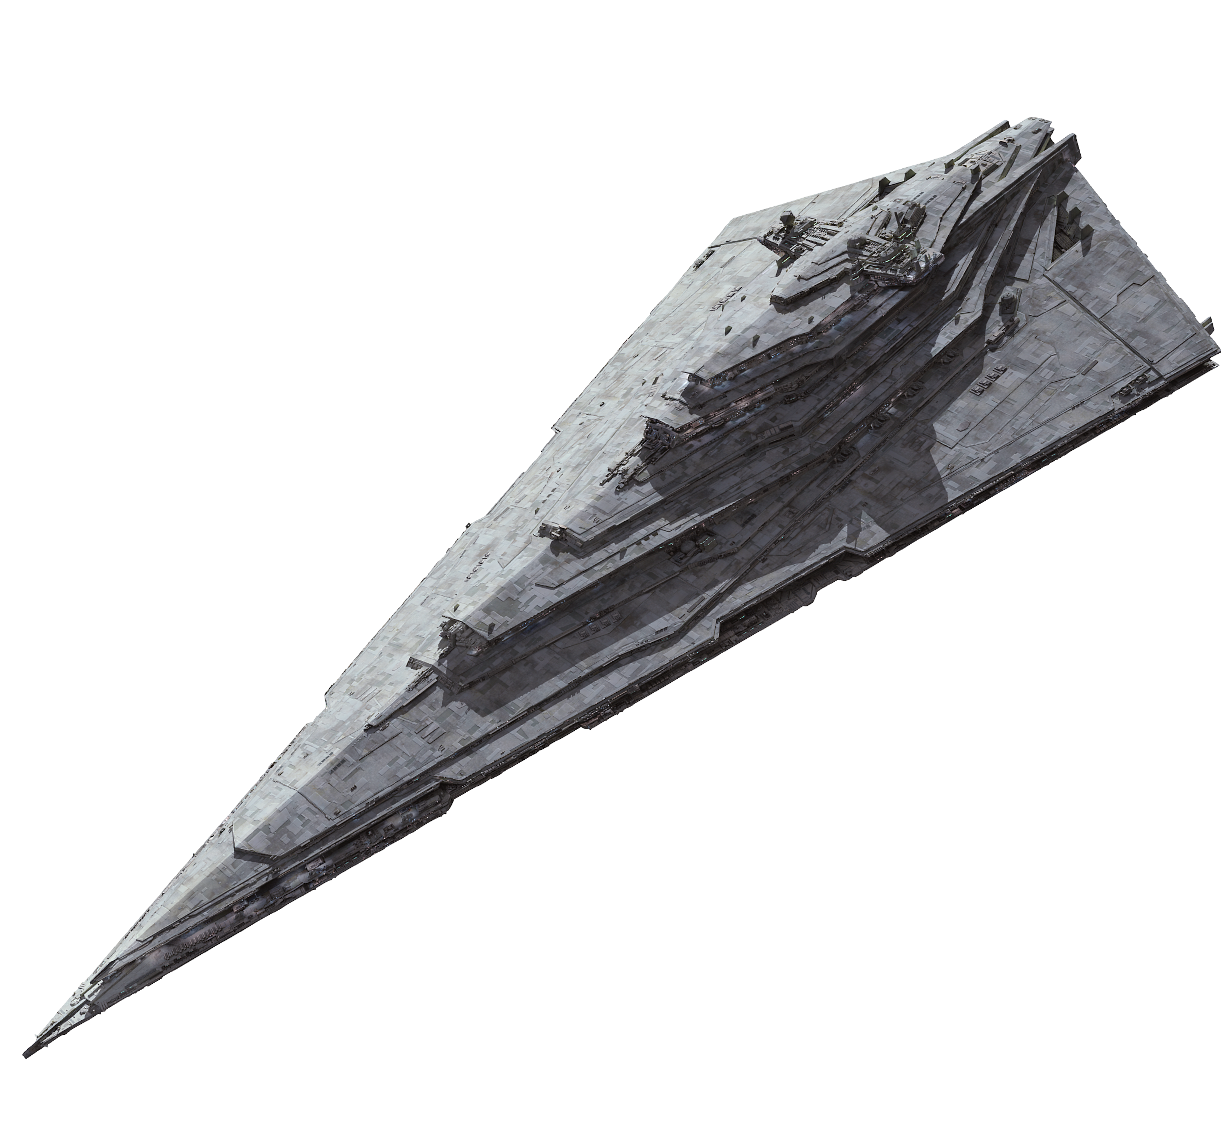 Resurgent Class Star Destroyer Description Was An Iconic Model Of Star Destroyer Built By Kuat Entral Star Wars Spaceships Star Wars Ships Star Wars Vehicles